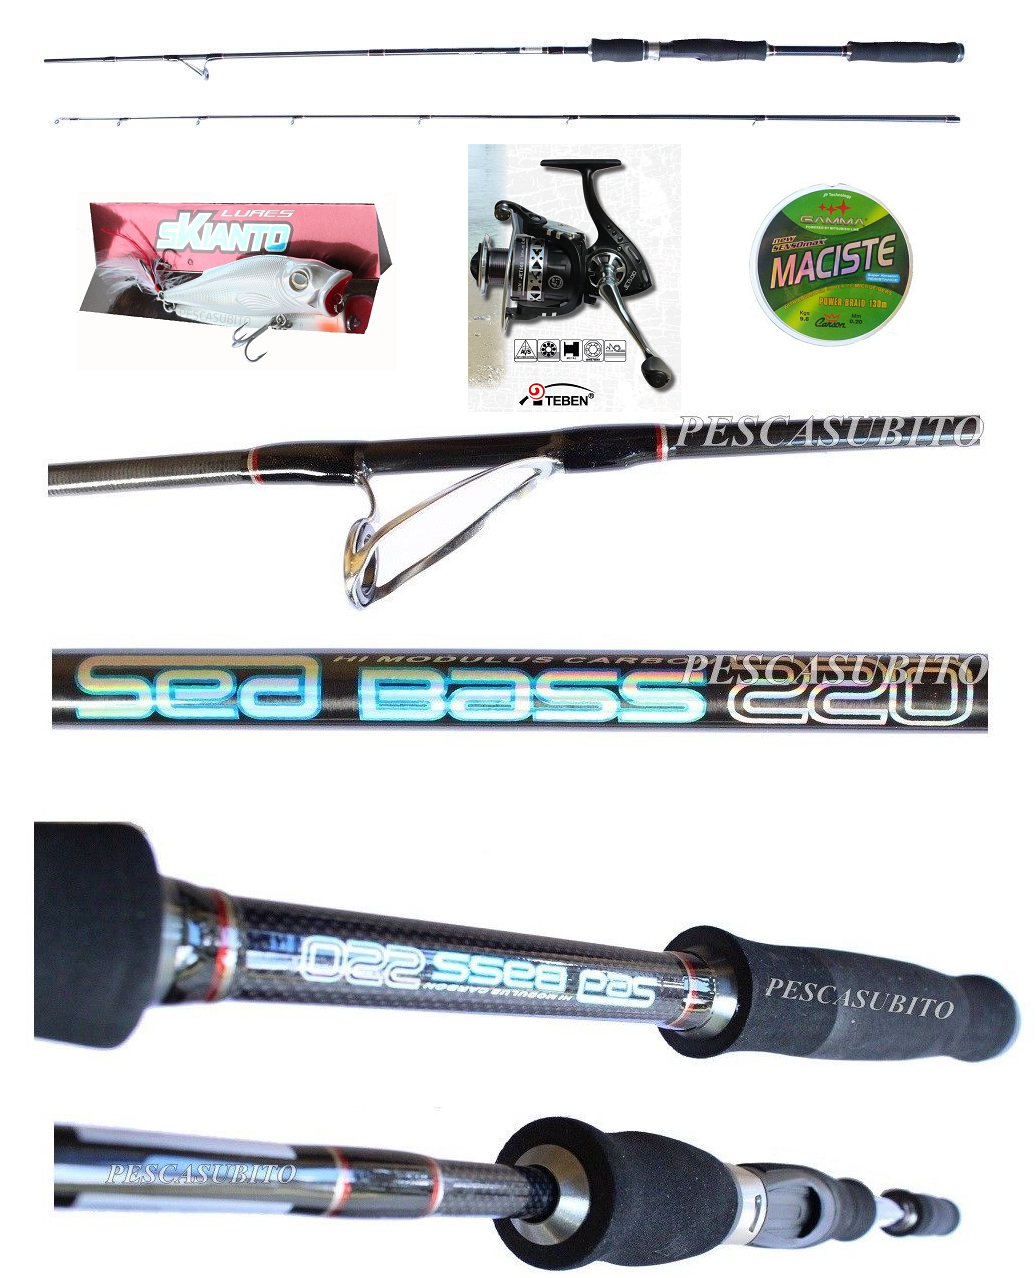 Kit Pesca Spinning Pesce Serra Canna Sea Bass  Mulinello  Treccia  Popper